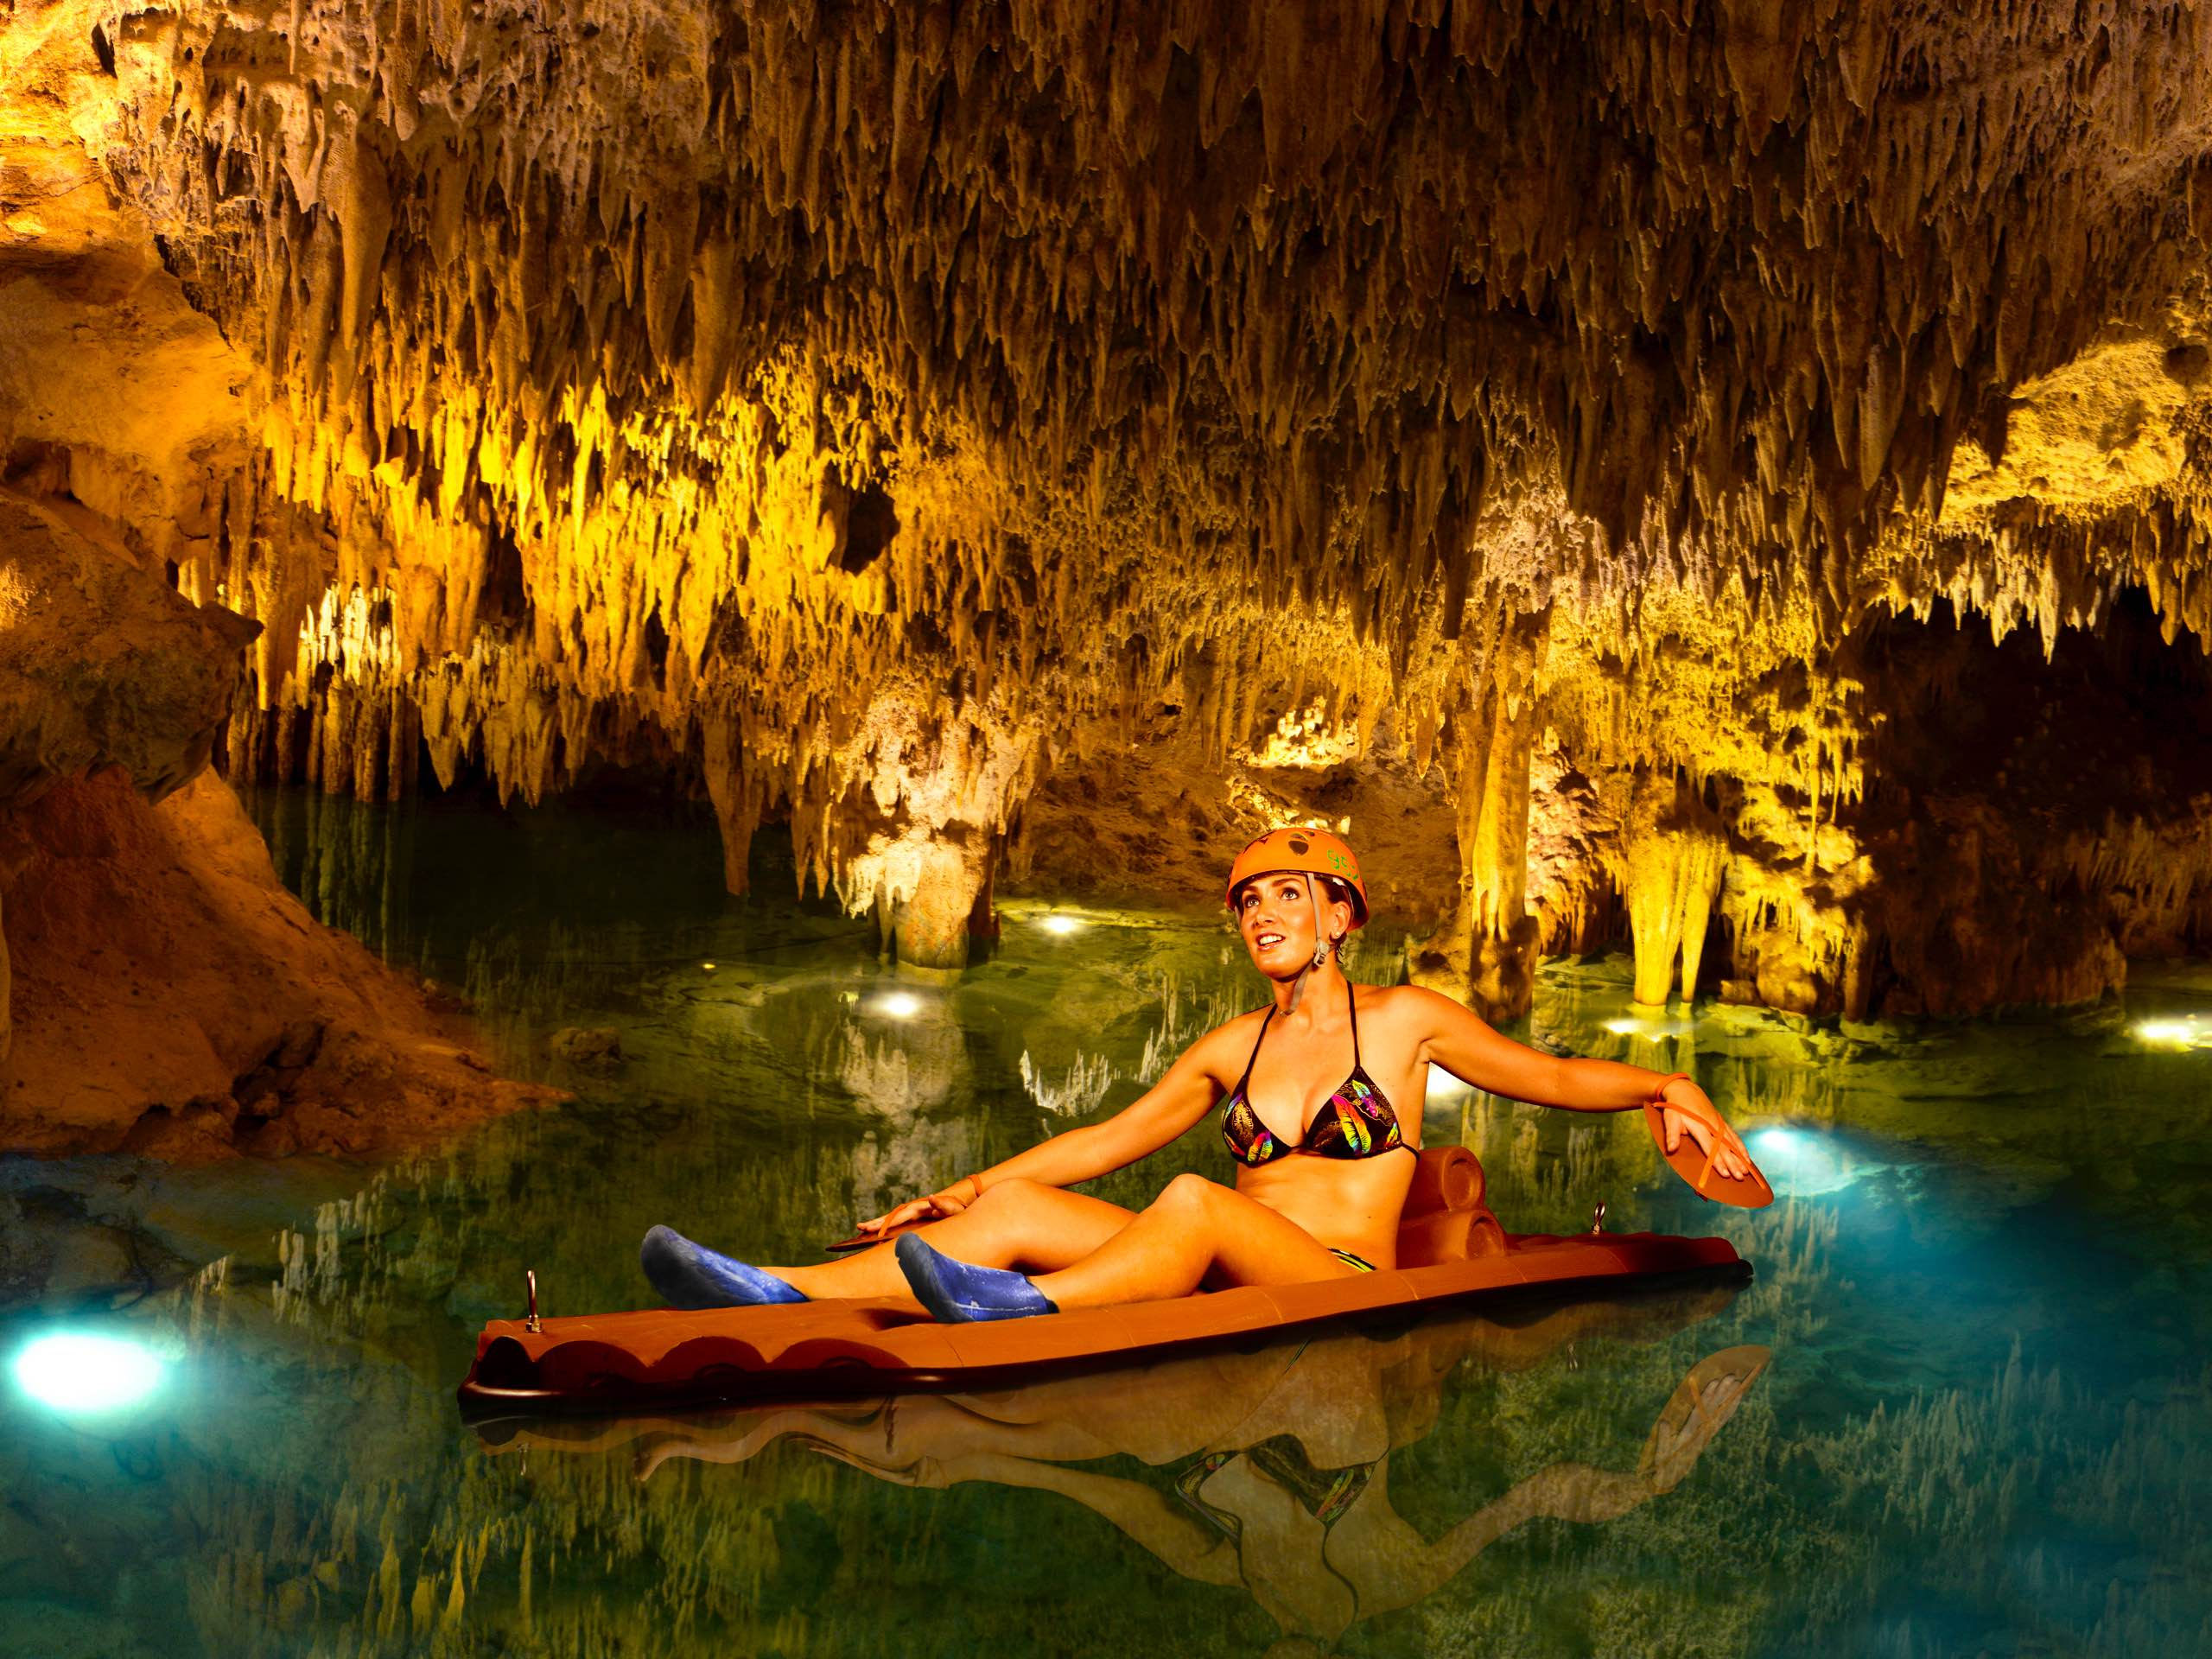 Xplor Tour - Last Minute Tours in Cancún and Riviera Maya